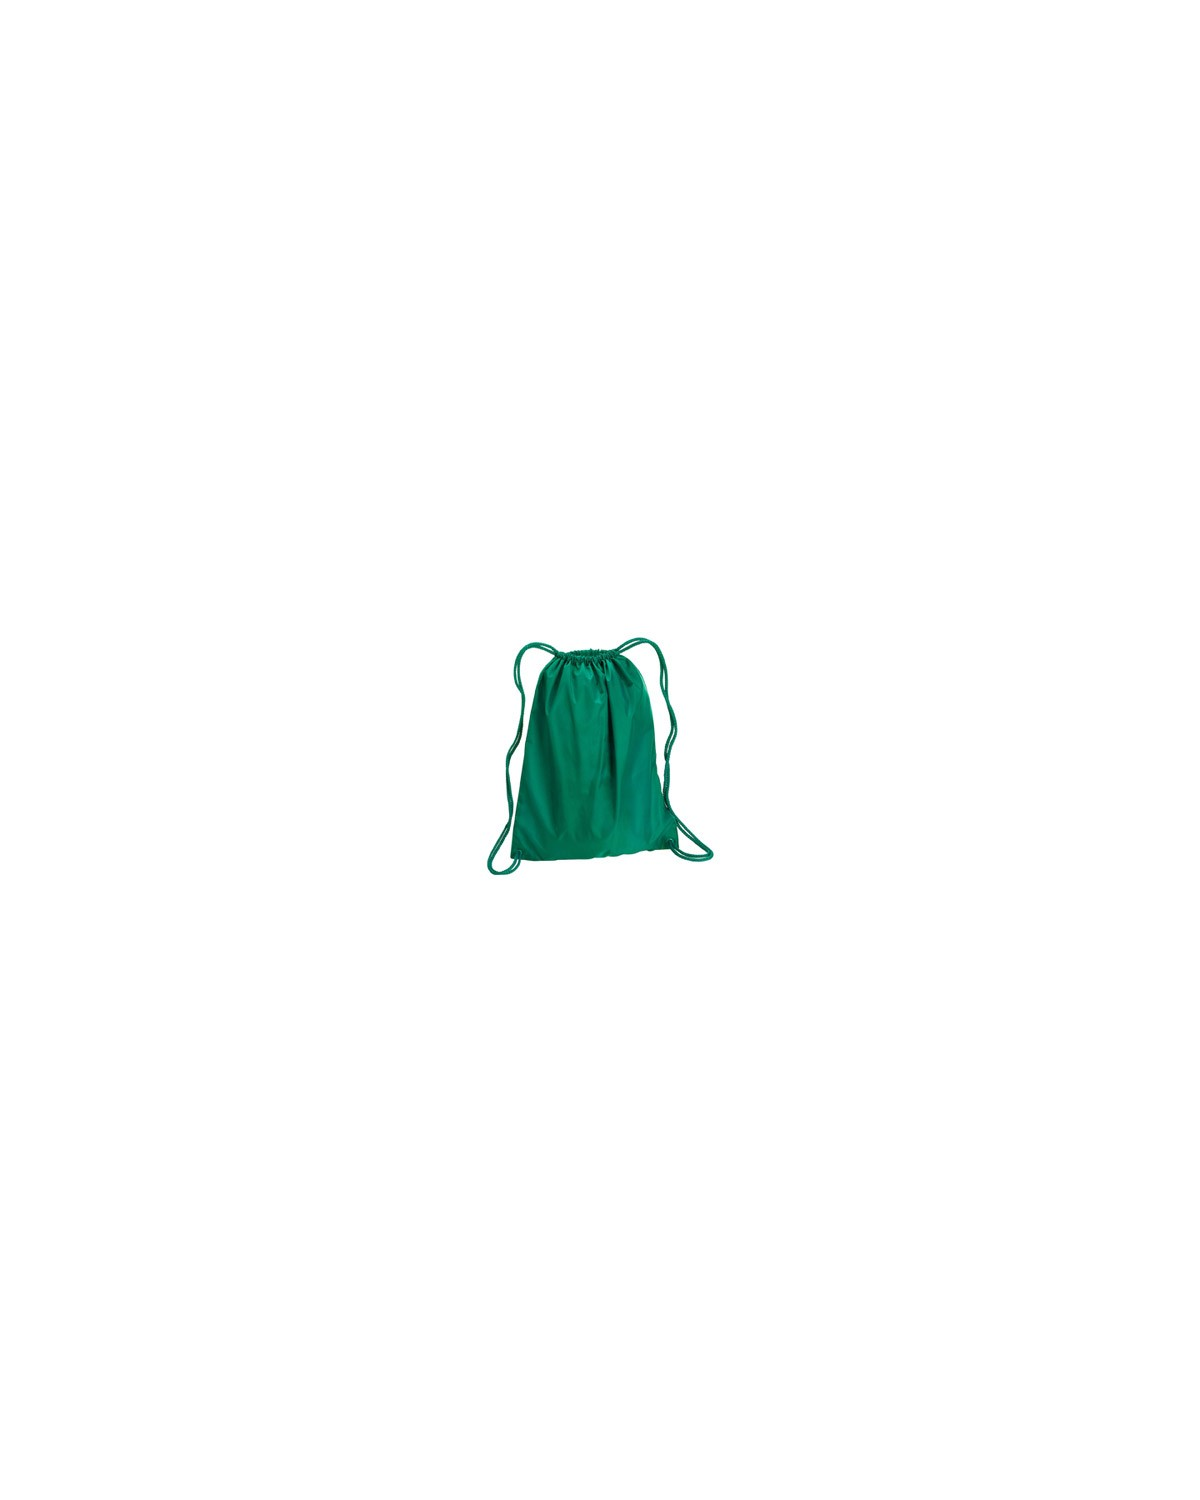 8882 Liberty Bags KELLY GREEN